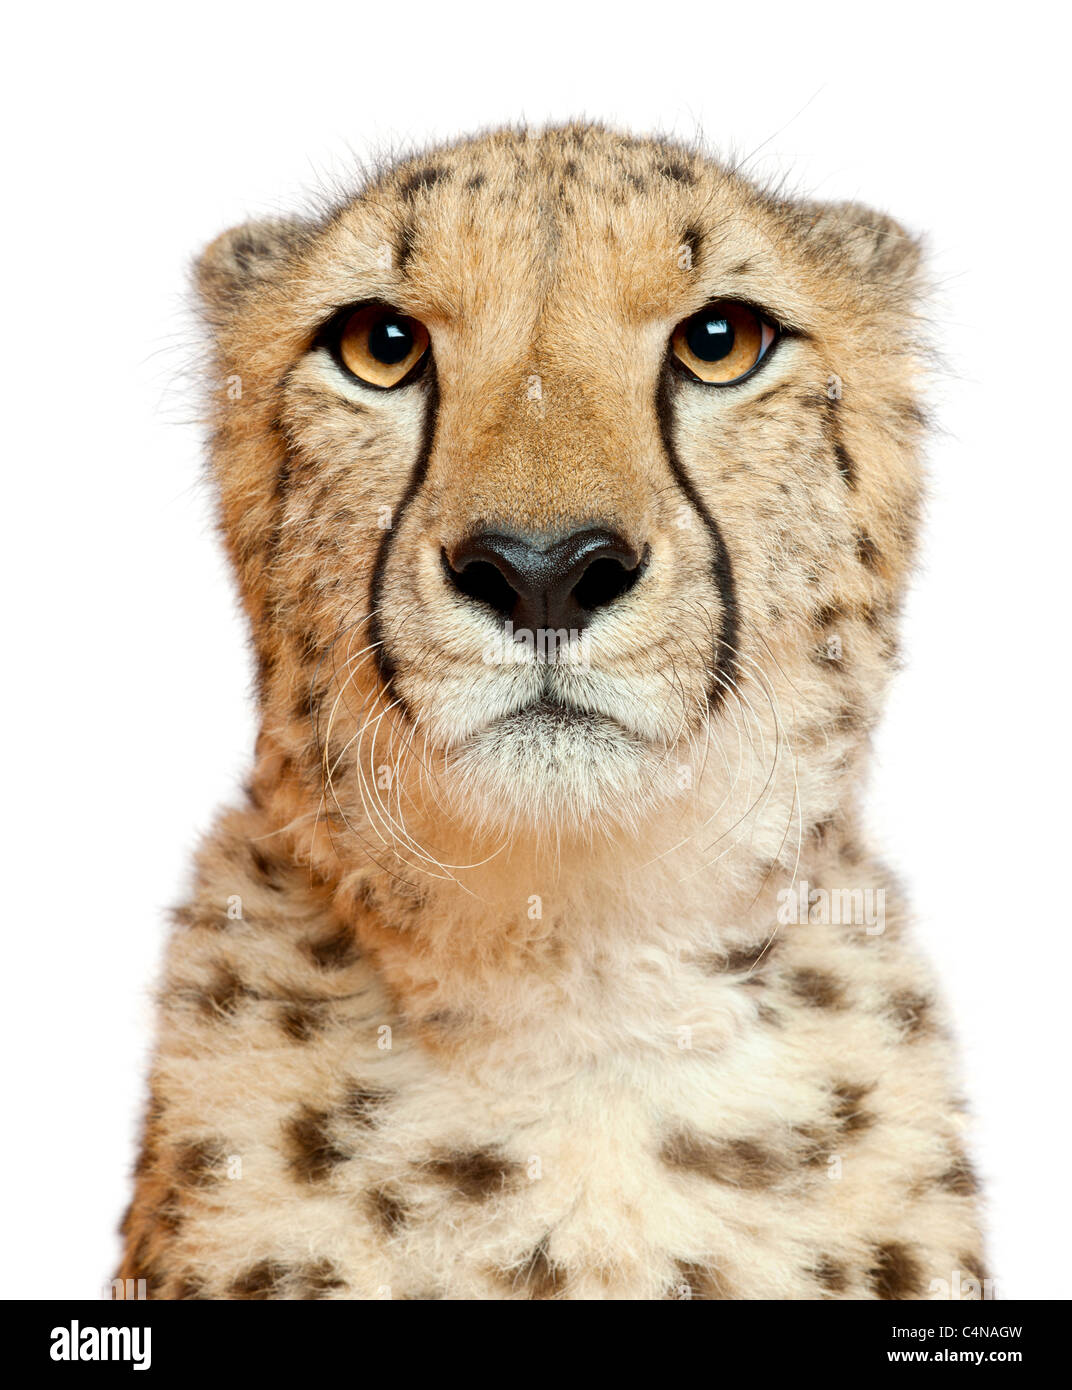 Close-up of Cheetah, Acinonyx jubatus, 18 months old, in front of white background Stock Photo